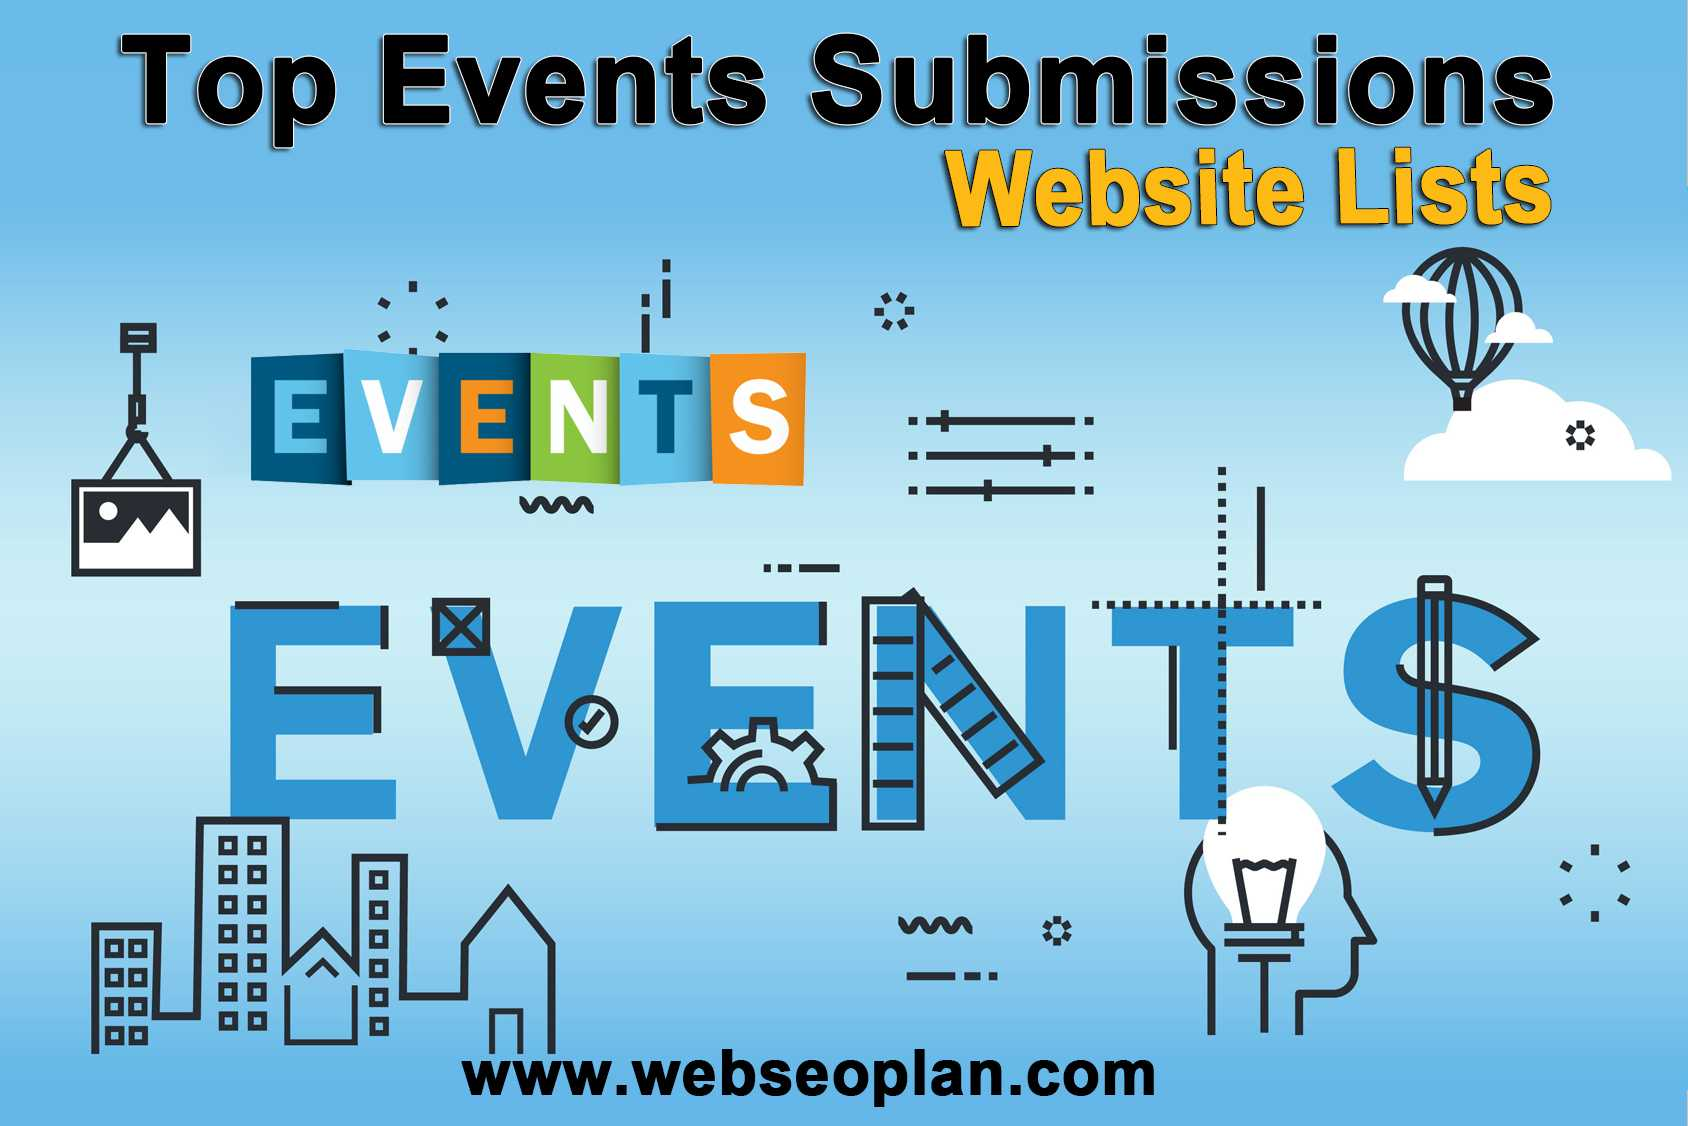 Top Events Submissions Websites Lists